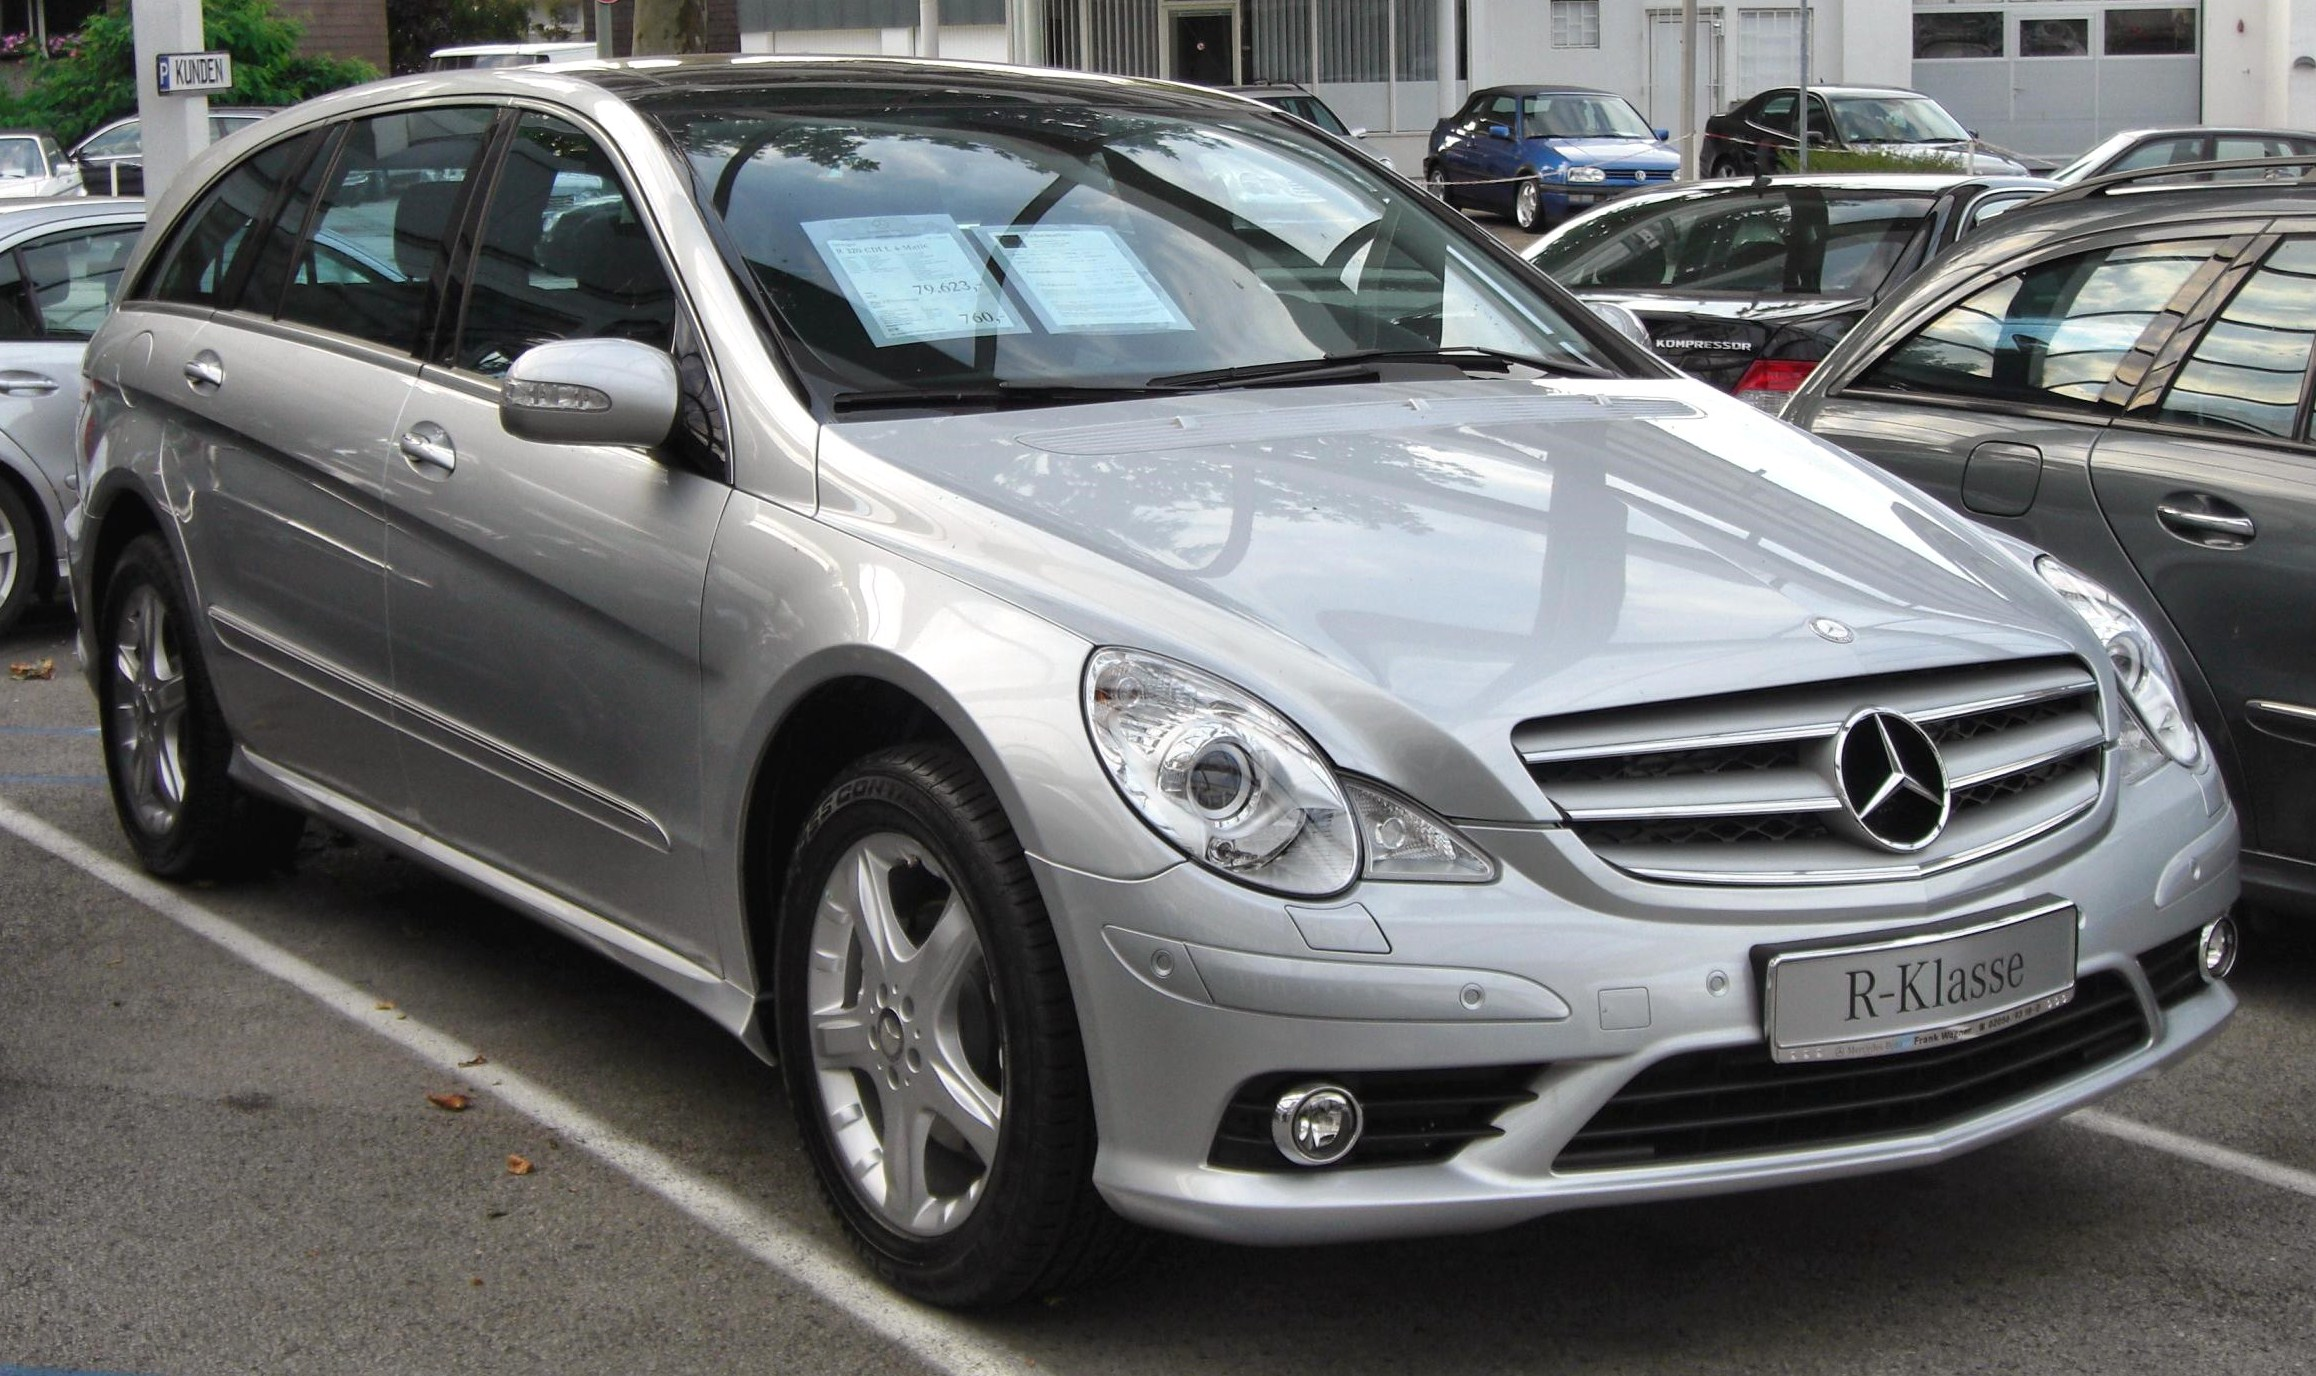 Mercedes-Benz R-Class - Wikipedia, the free encyclopedia